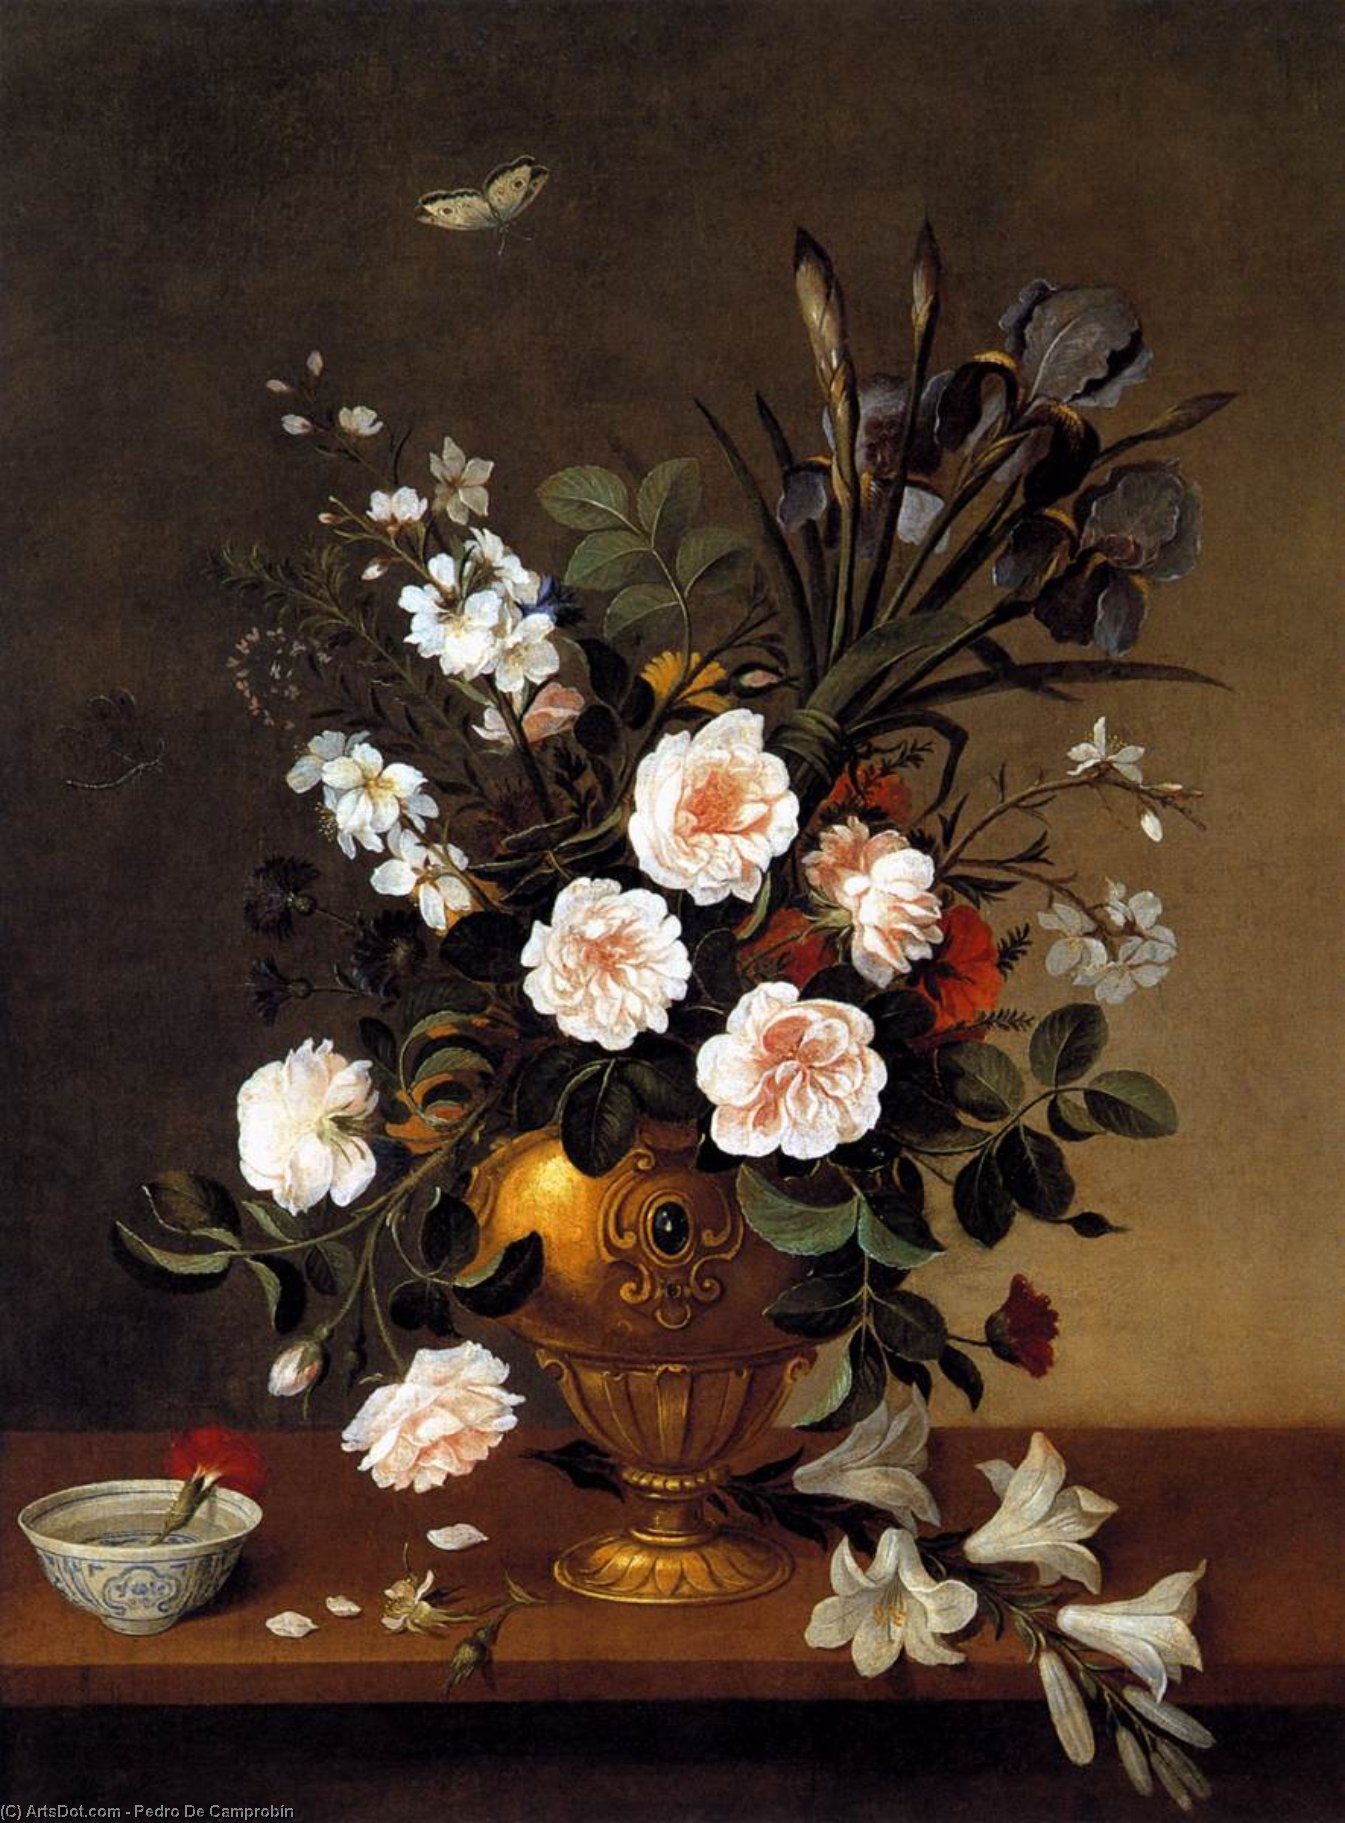 Vase of Flowers, Oil On Canvas by Pedro De Camprobín (1605-1674, Spain)